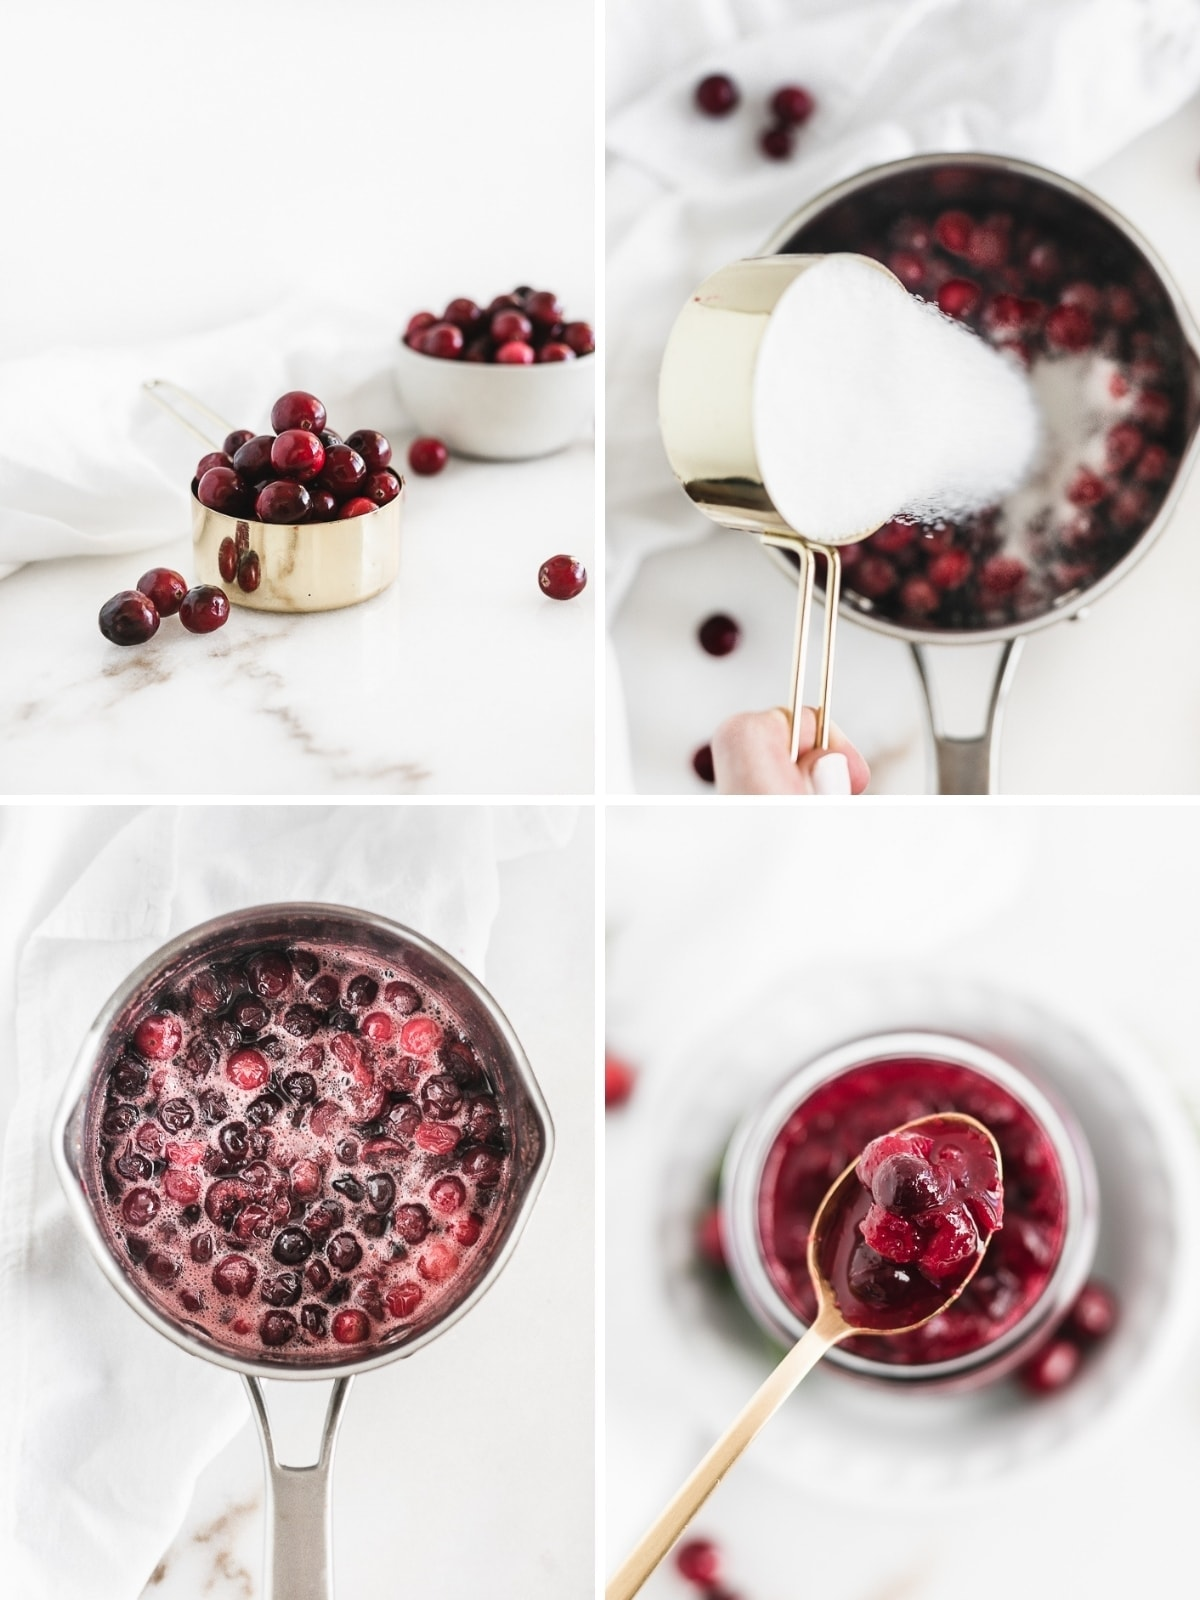 Ditch the canned stuff and make this homemade reduced sugar cranberry sauce instead! It is so simple to make and goes perfectly with your Thanksgiving turkey! (gluten-free, vegan, nut-free)